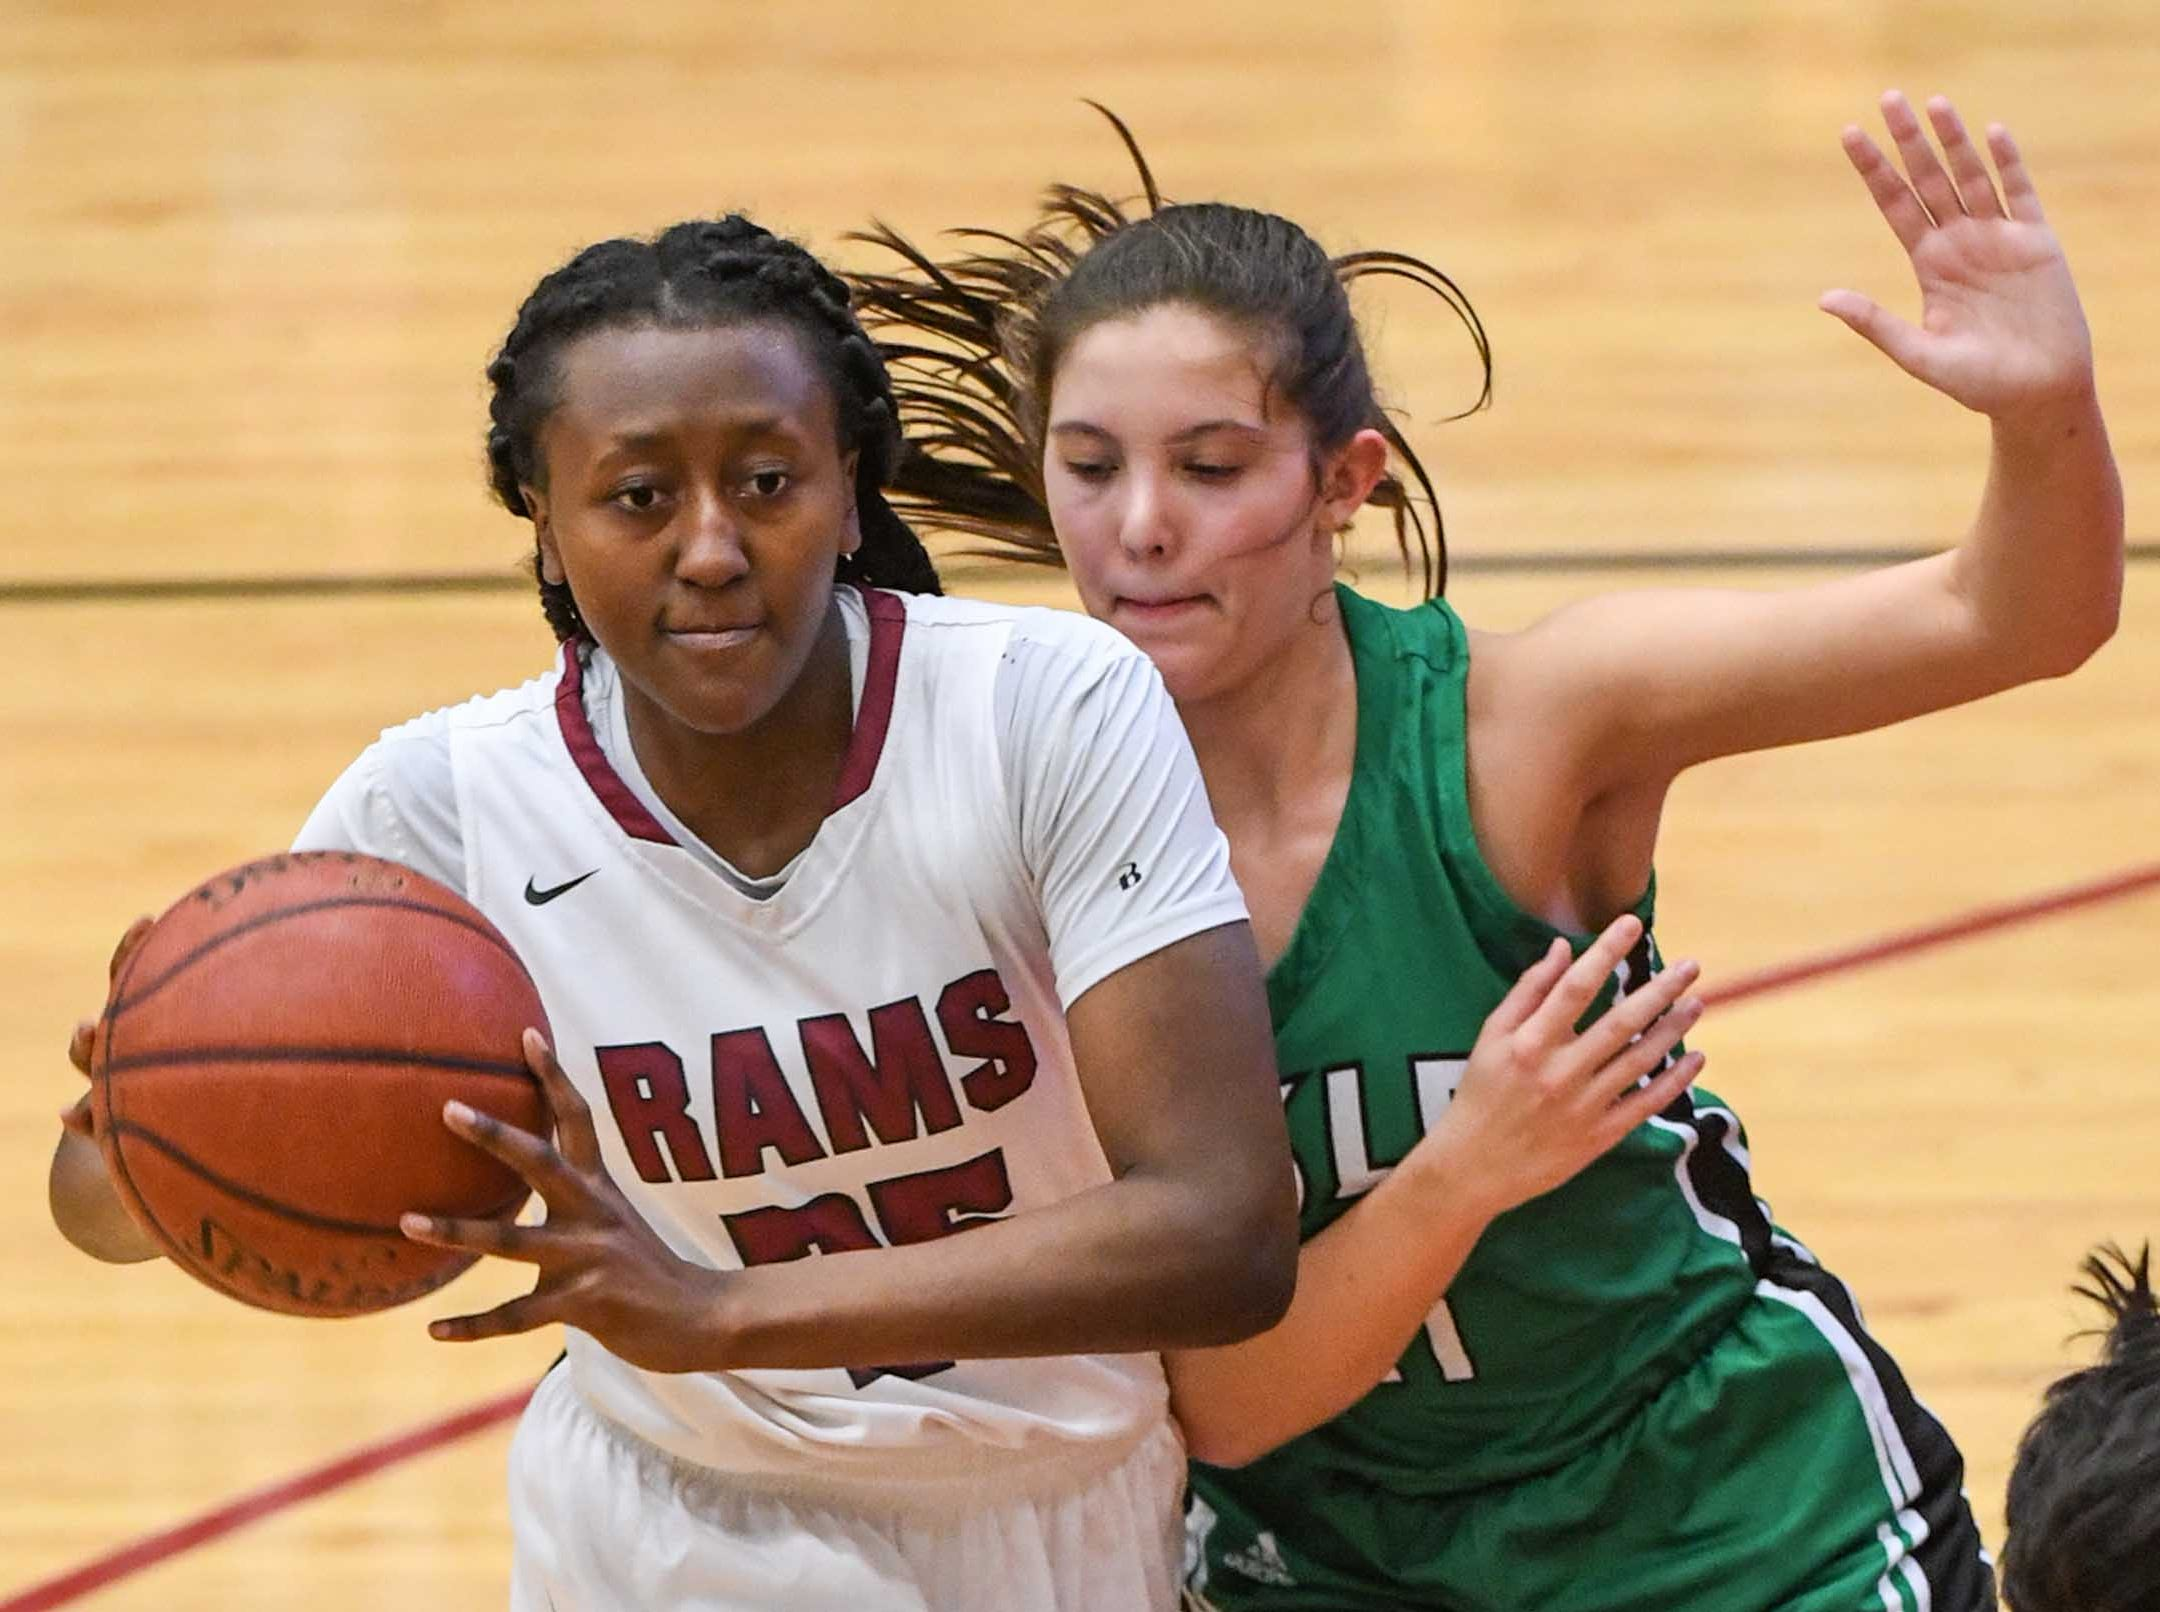 Westside junior Keyshuna Fair(25) passes near Easley sophomore Kaitlin Fuller(11) during the second quarter at Westside High School in Anderson on Friday.